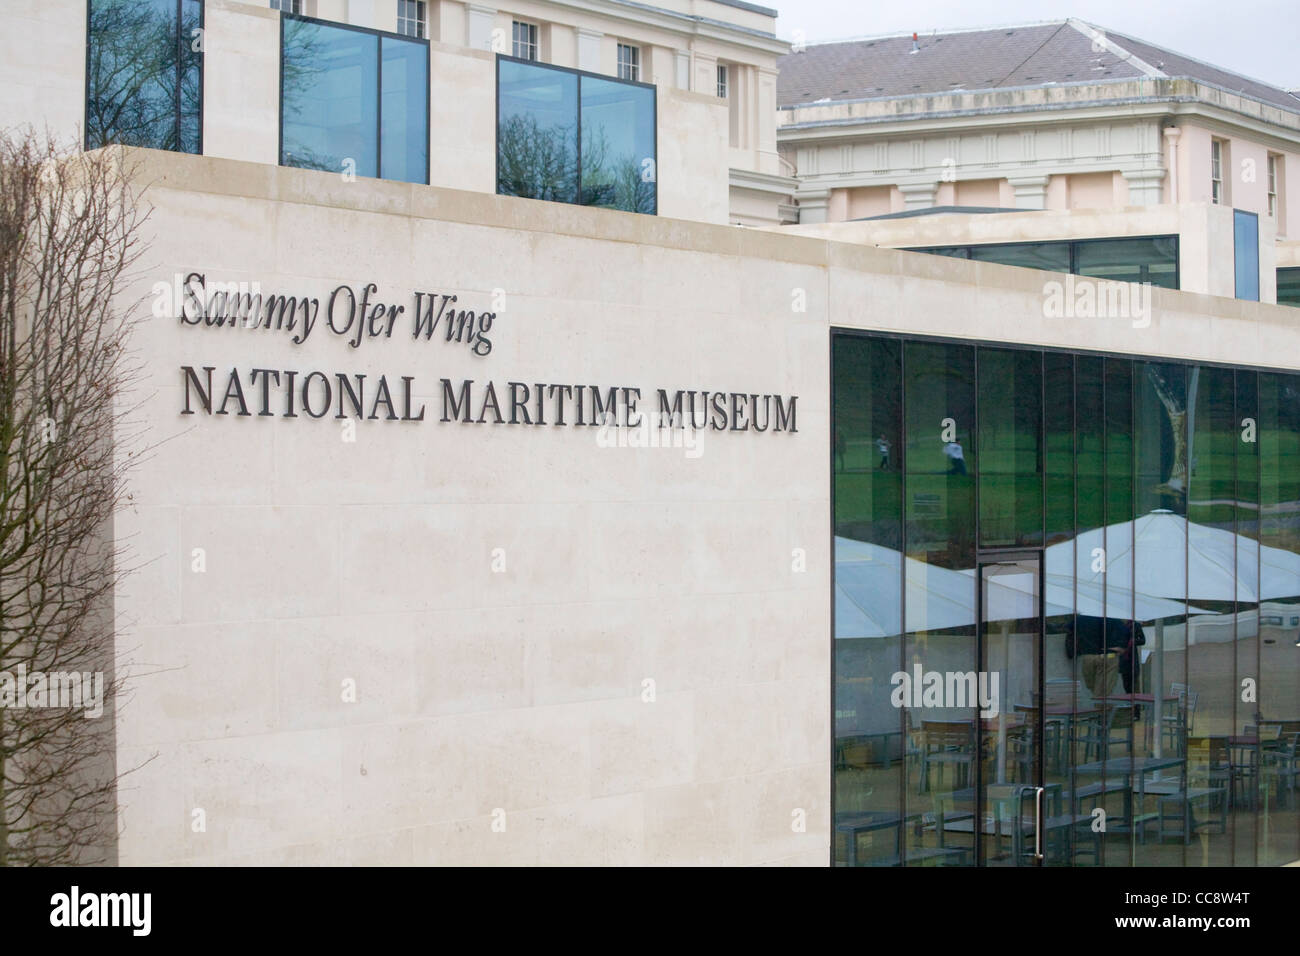 Sammy Ofer wing, National Maritime Museum, Greenwich, London - Stock Image